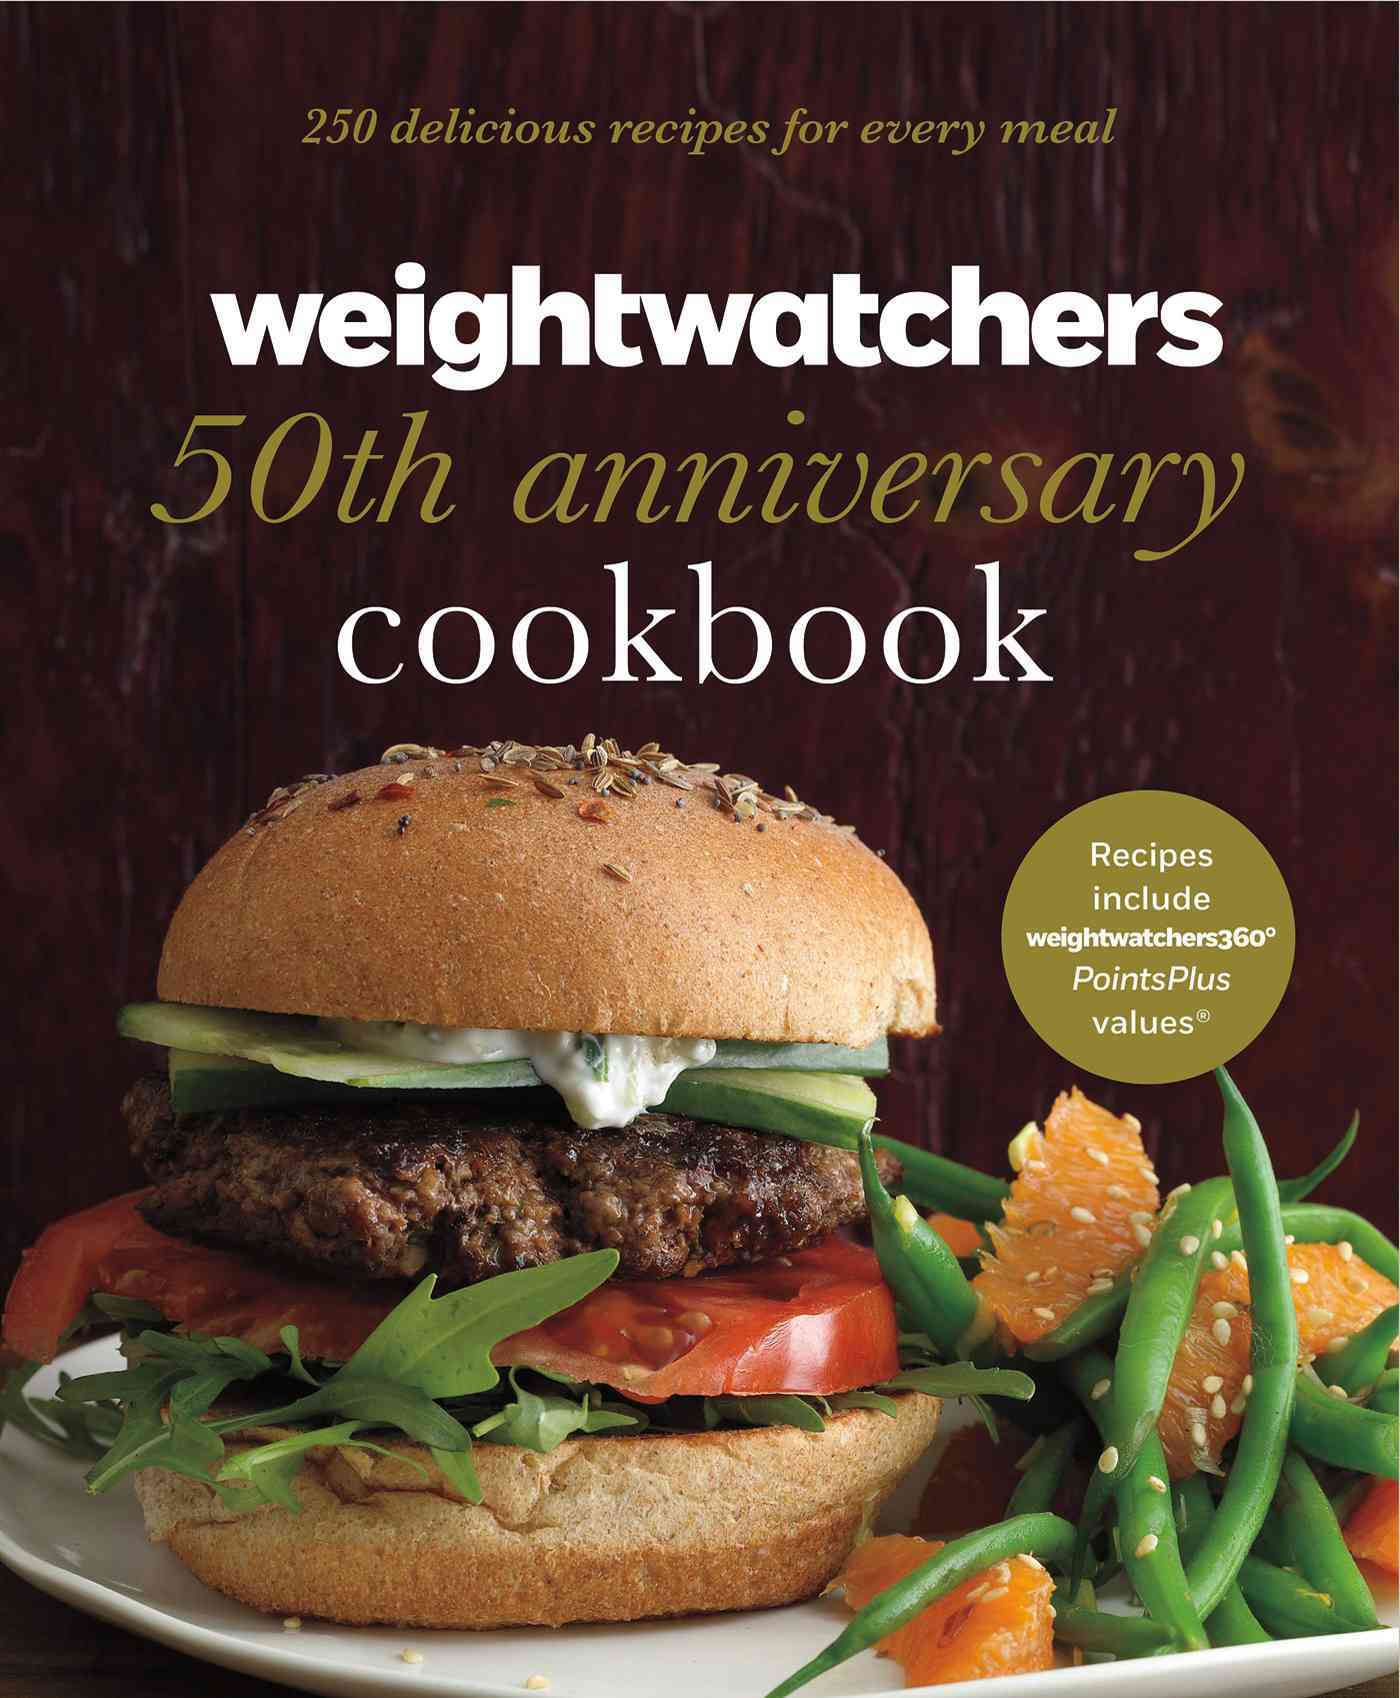 Weight Watchers 50th Anniversary Cookbook: 280 Delicious Recipes for Every Meal (Hardcover)